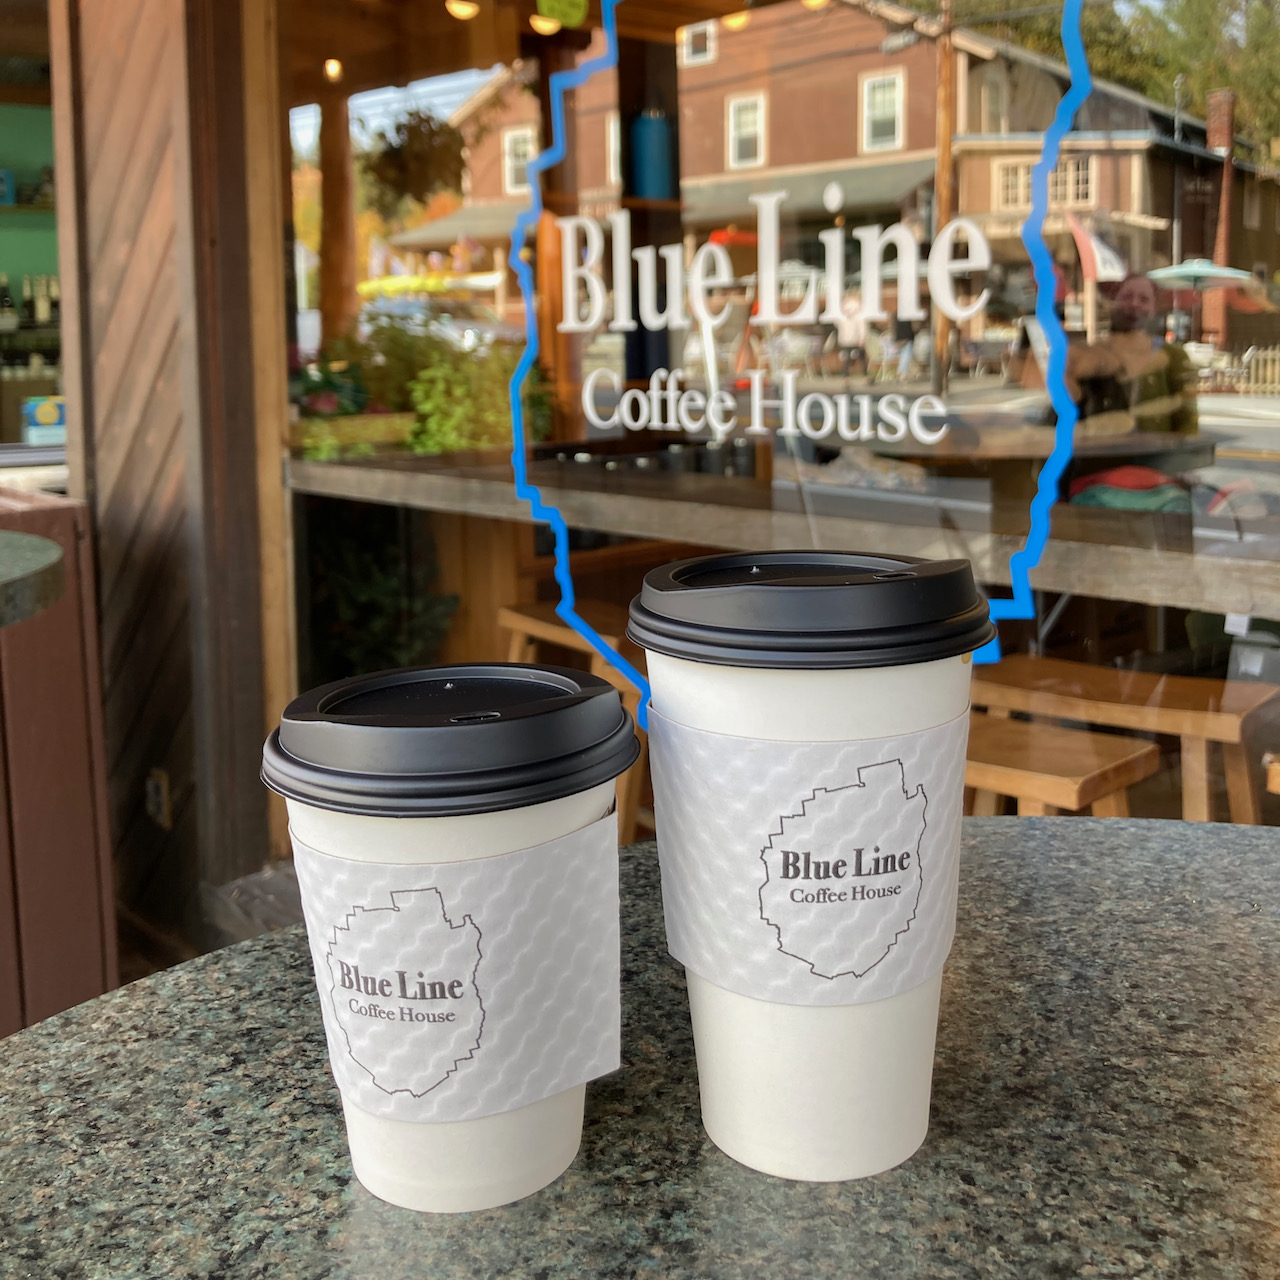 Two coffee cups on table in front of window. Window has Blue Line Coffee House decal.